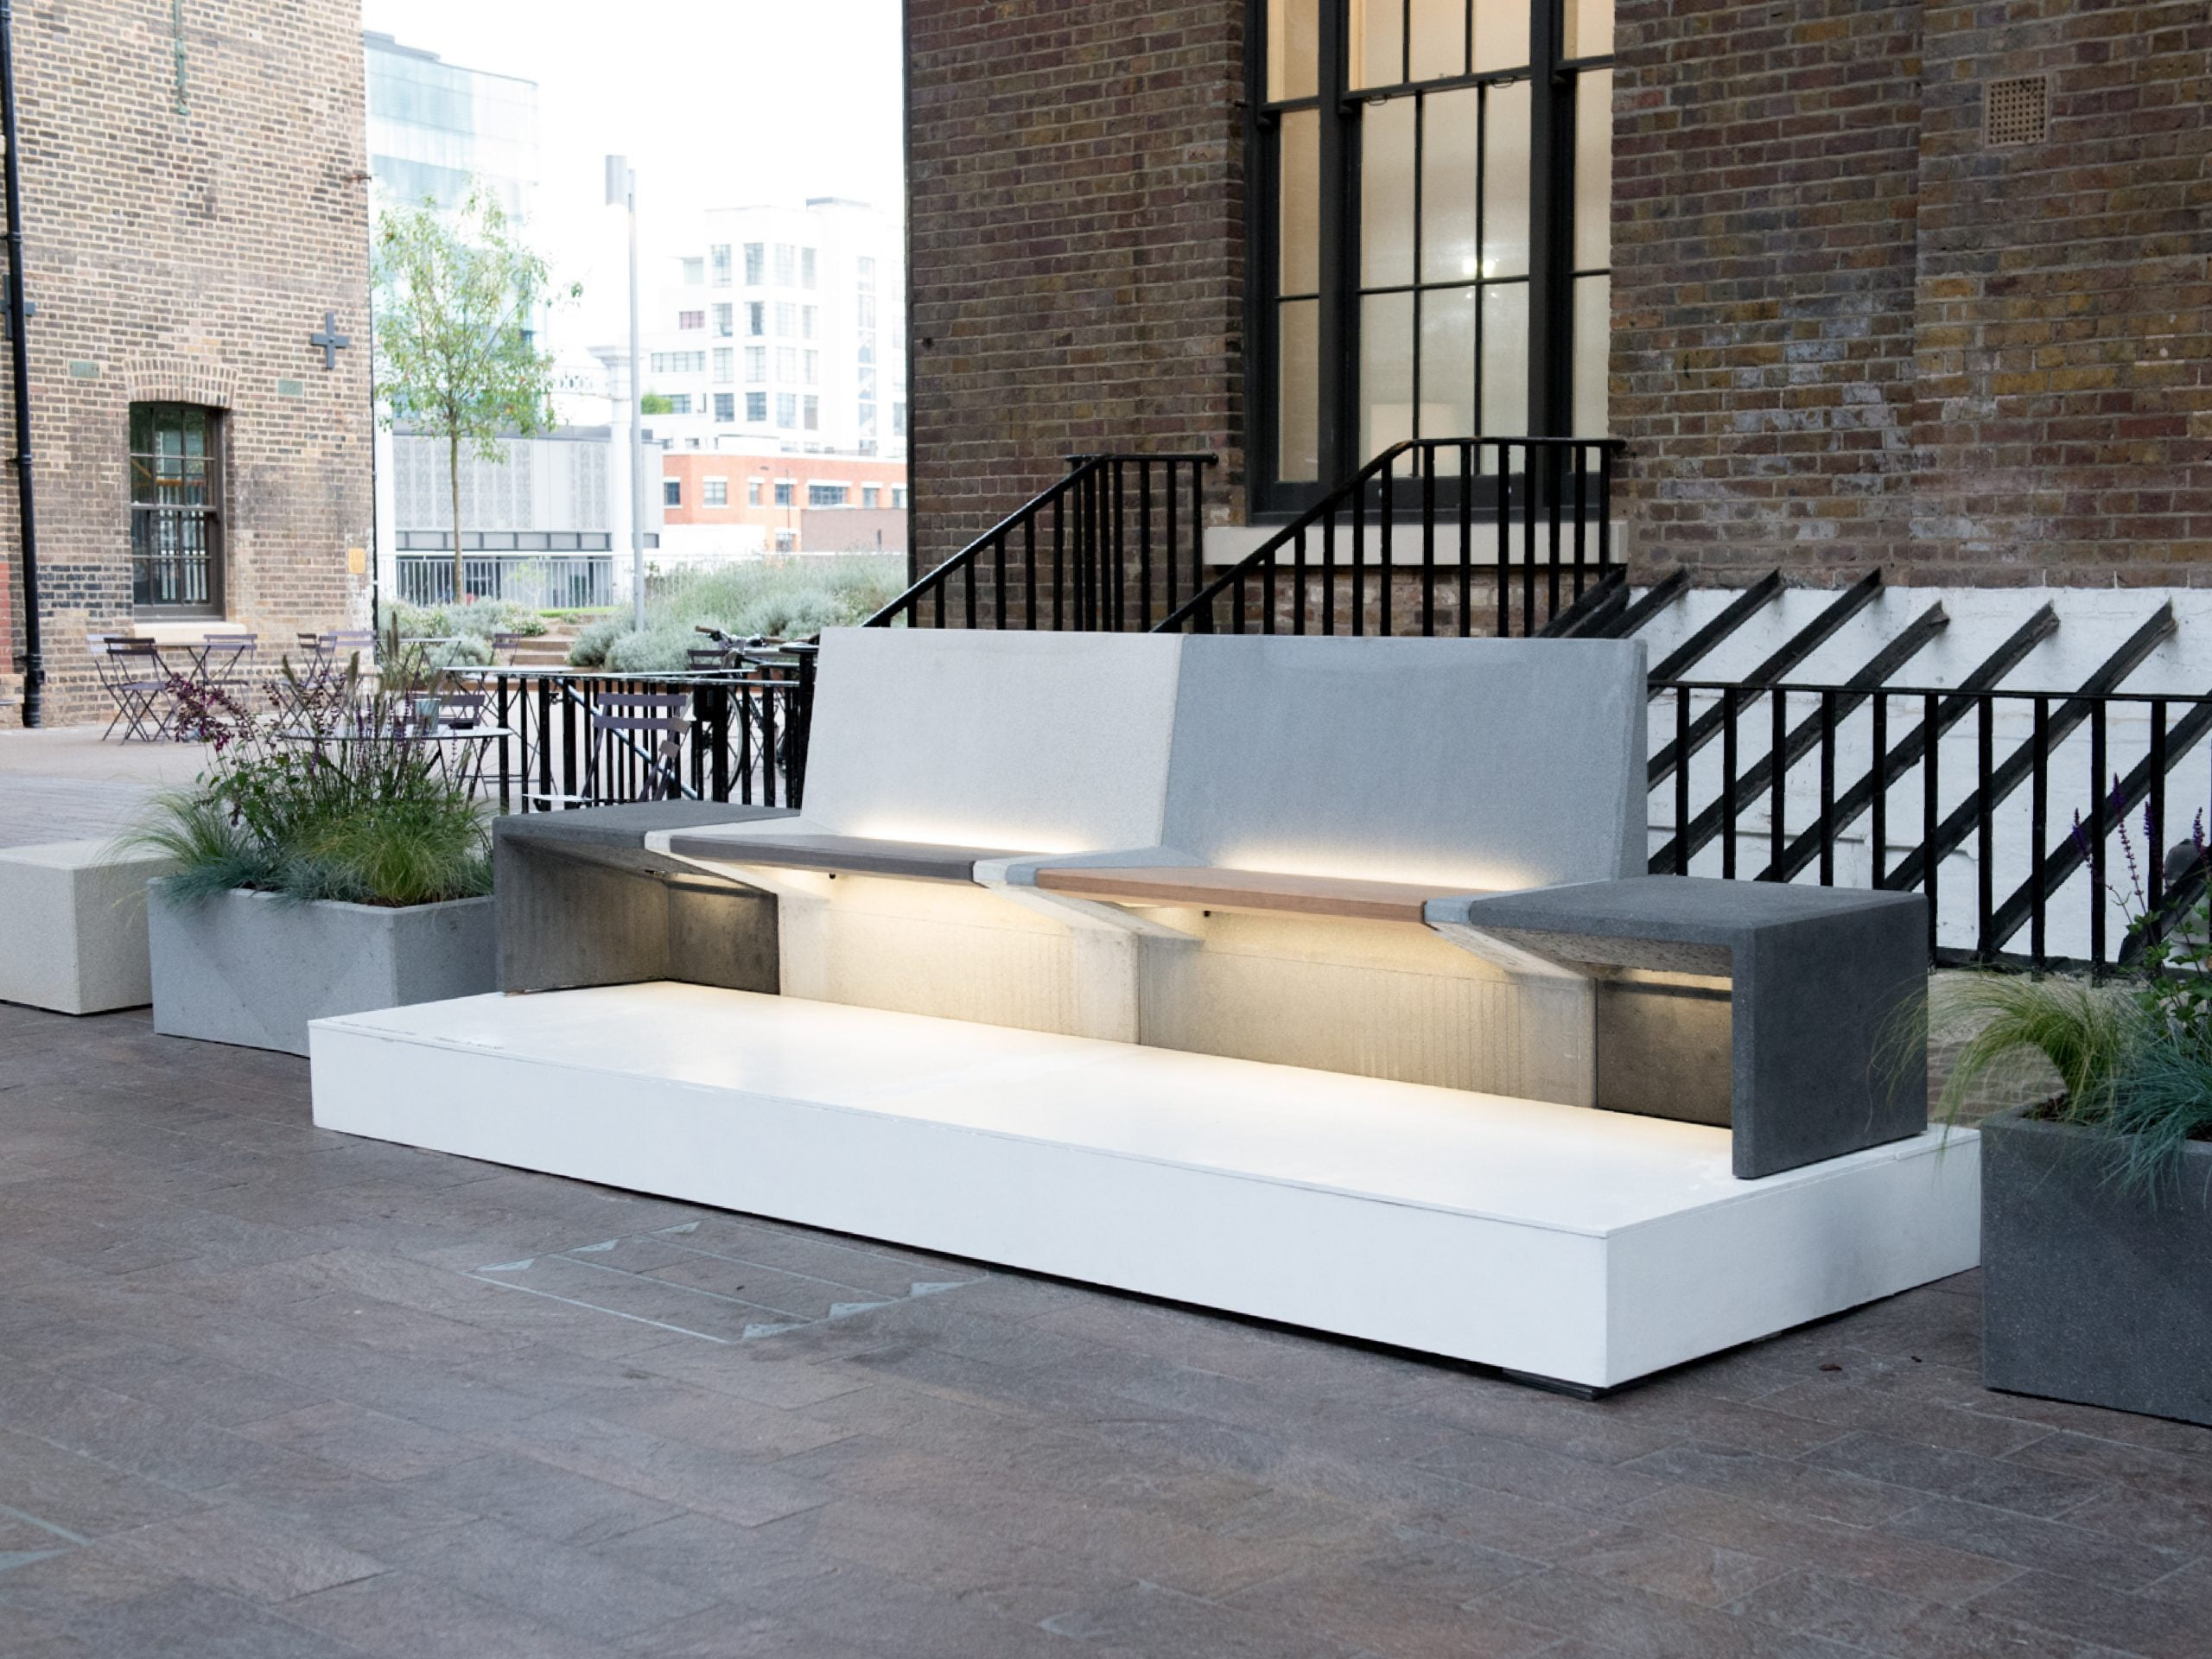 Modular smart concrete furniture suite